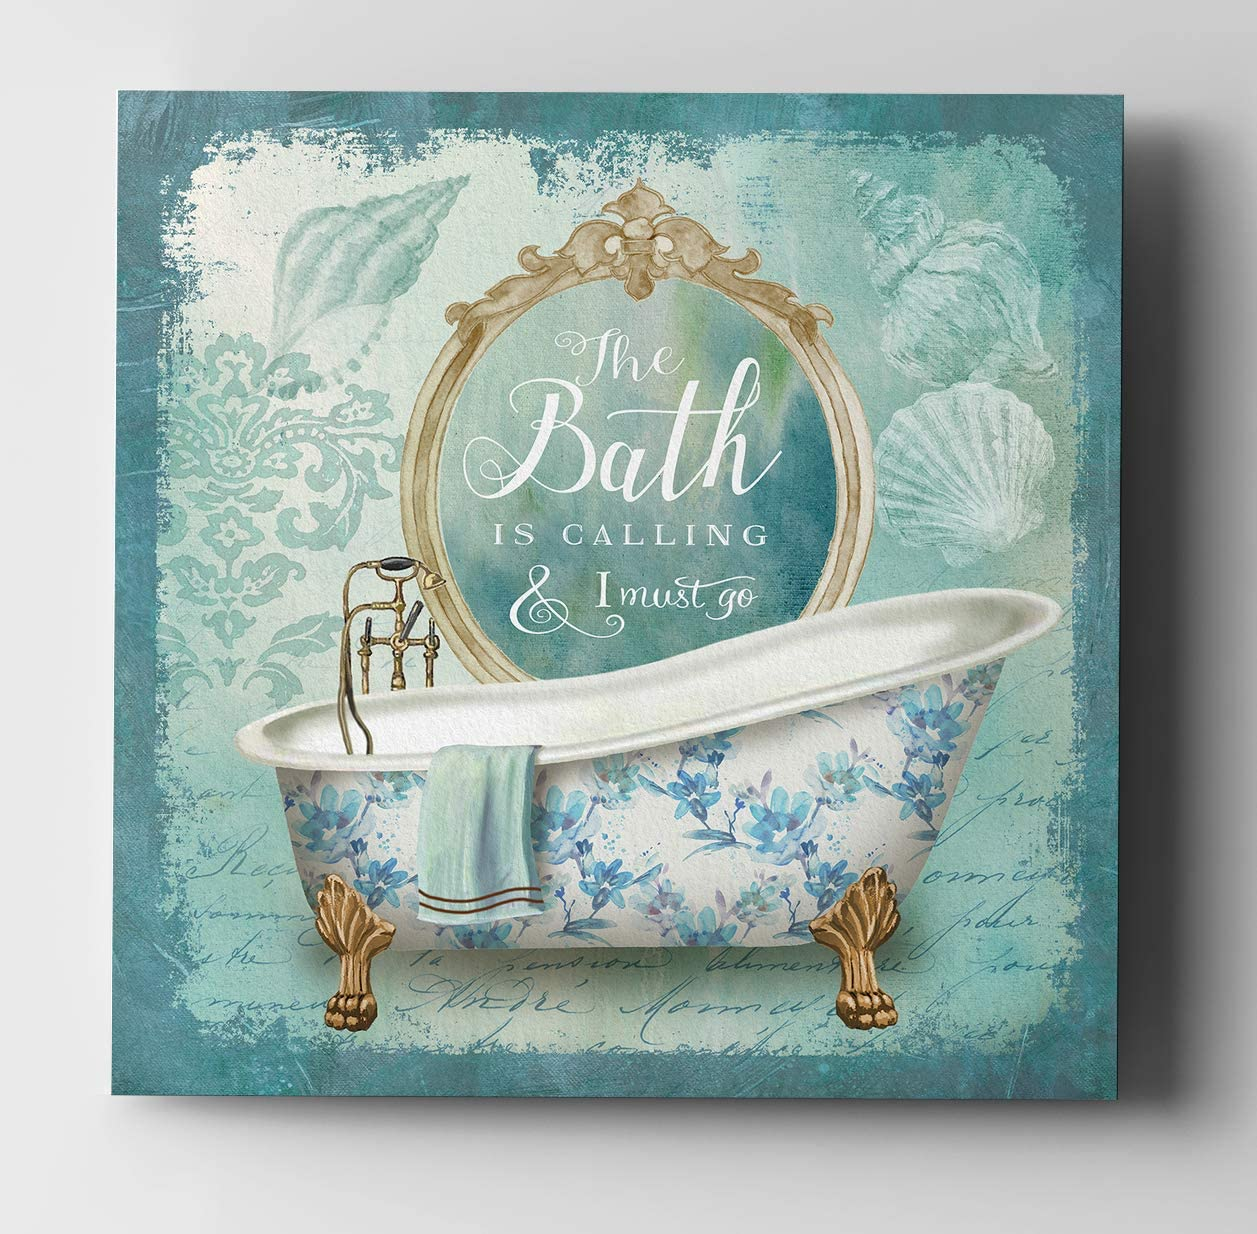 WEXFORD HOME Excellent Mirror Bath II-Gallery 32 shop Wrapped Art Canvas Print